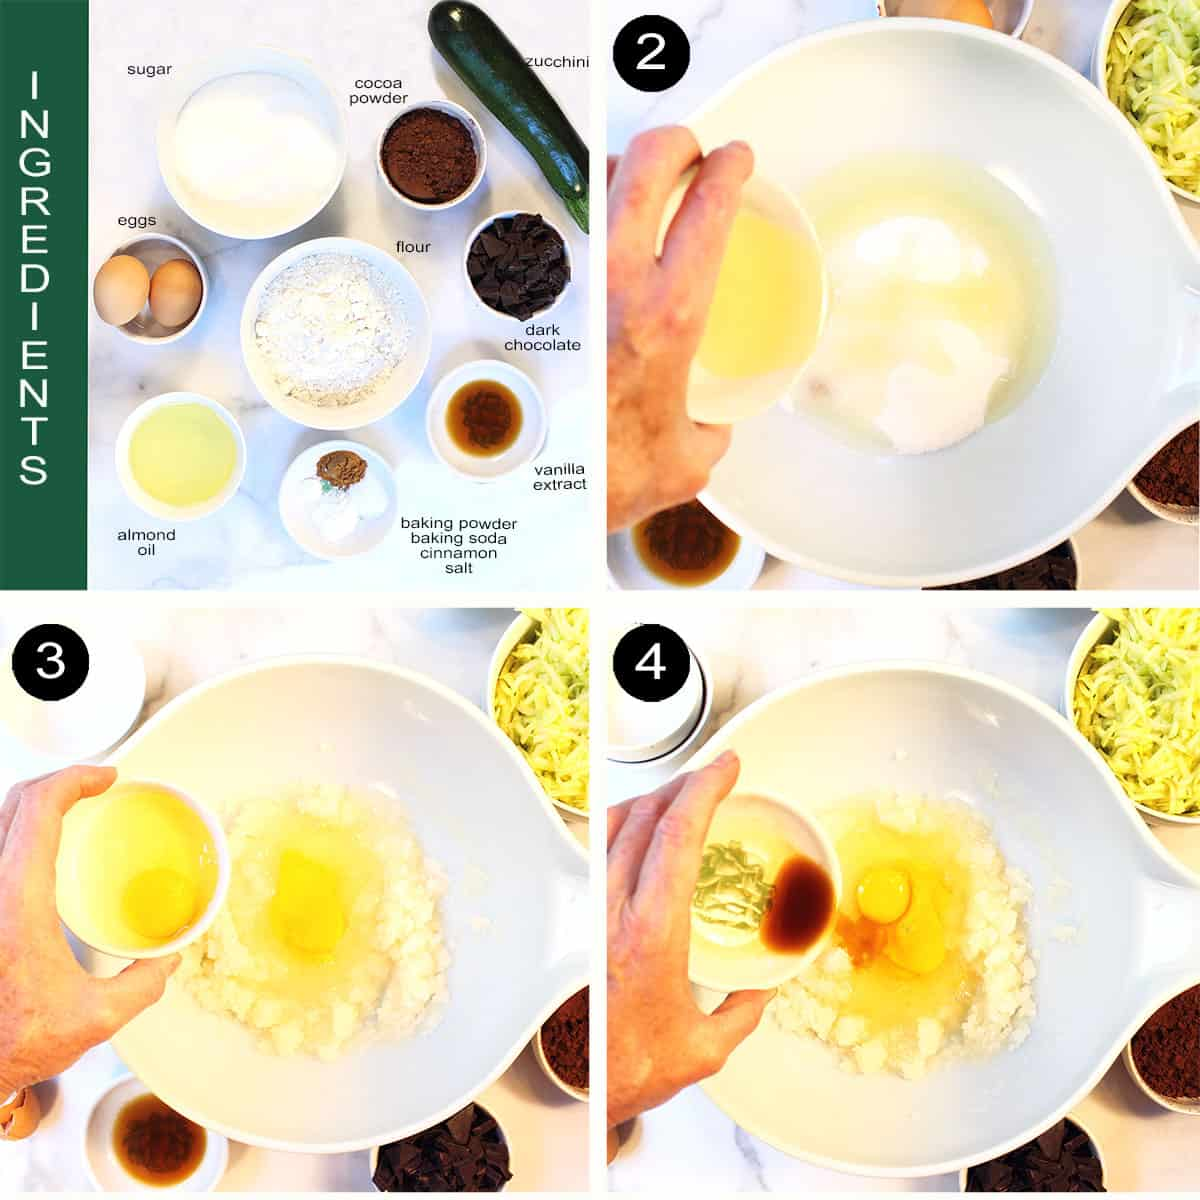 Step by step directions for wet ingredients.